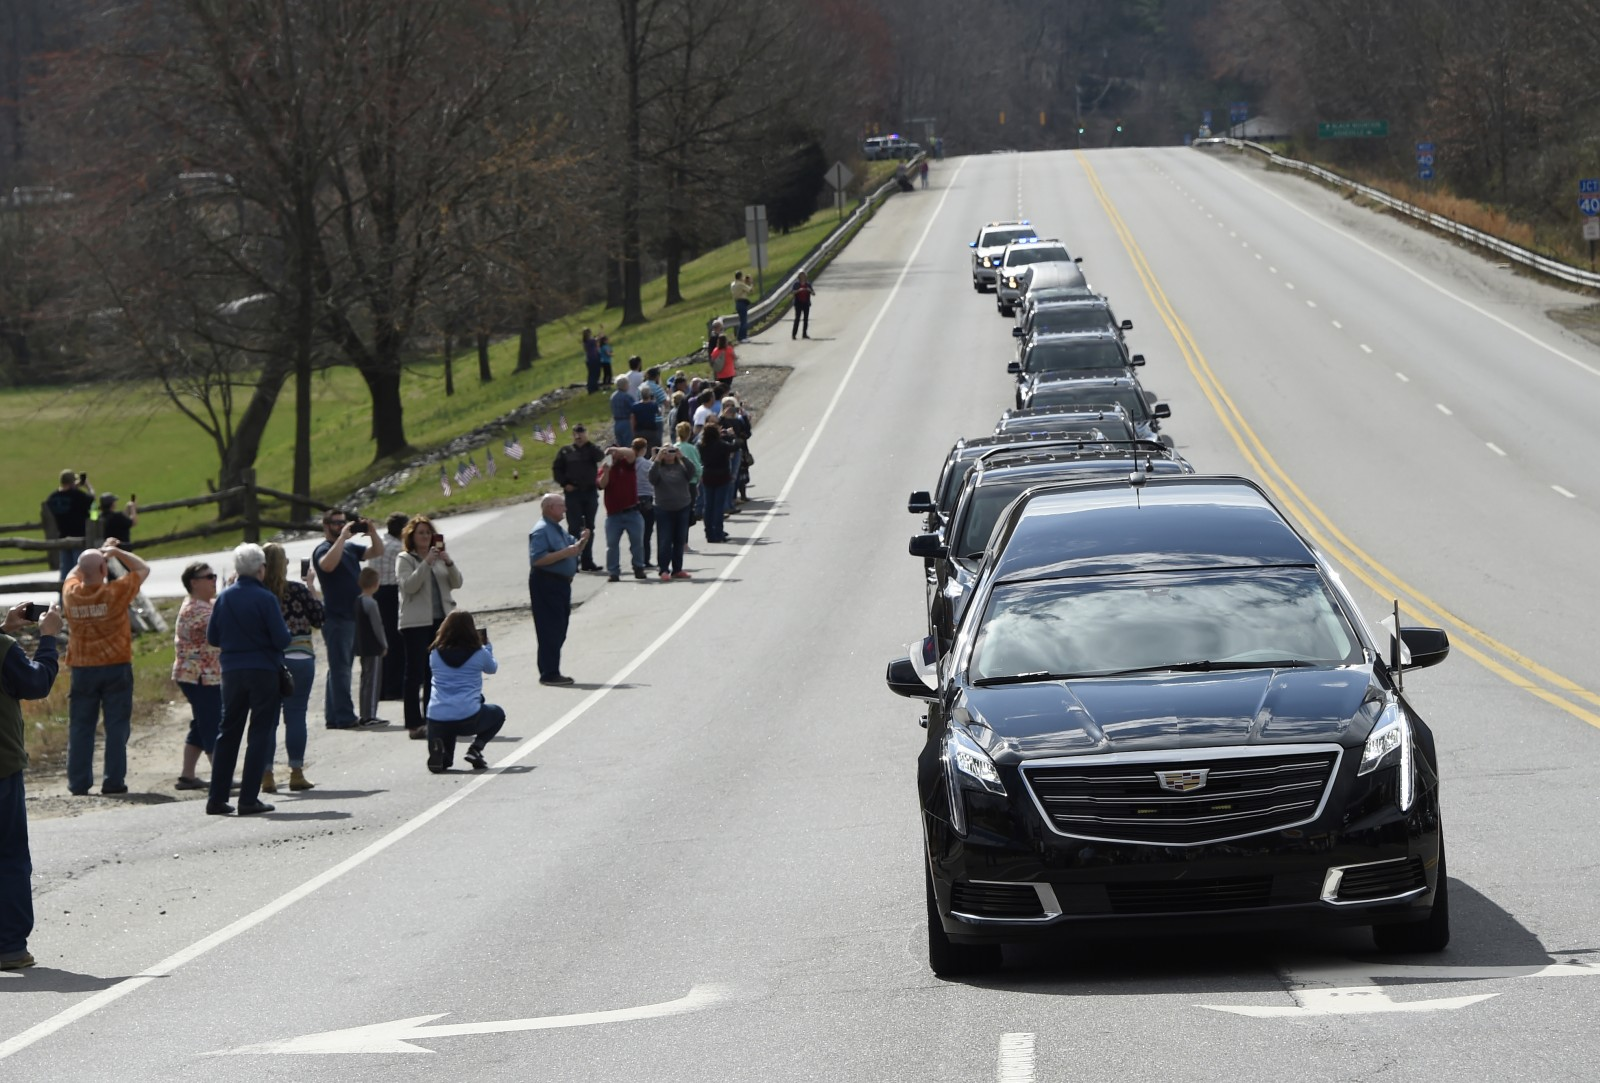 People watch as the hearse carrying the body of Billy Graham leaves Asheville, N.C., Saturday, Feb. 24, 2018. Graham's body was brought to his hometown of Charlotte on Saturday, Feb. 24, as part of a procession expected to draw crowds of well-wishers. (Kathy Kmonicek/pool photo)